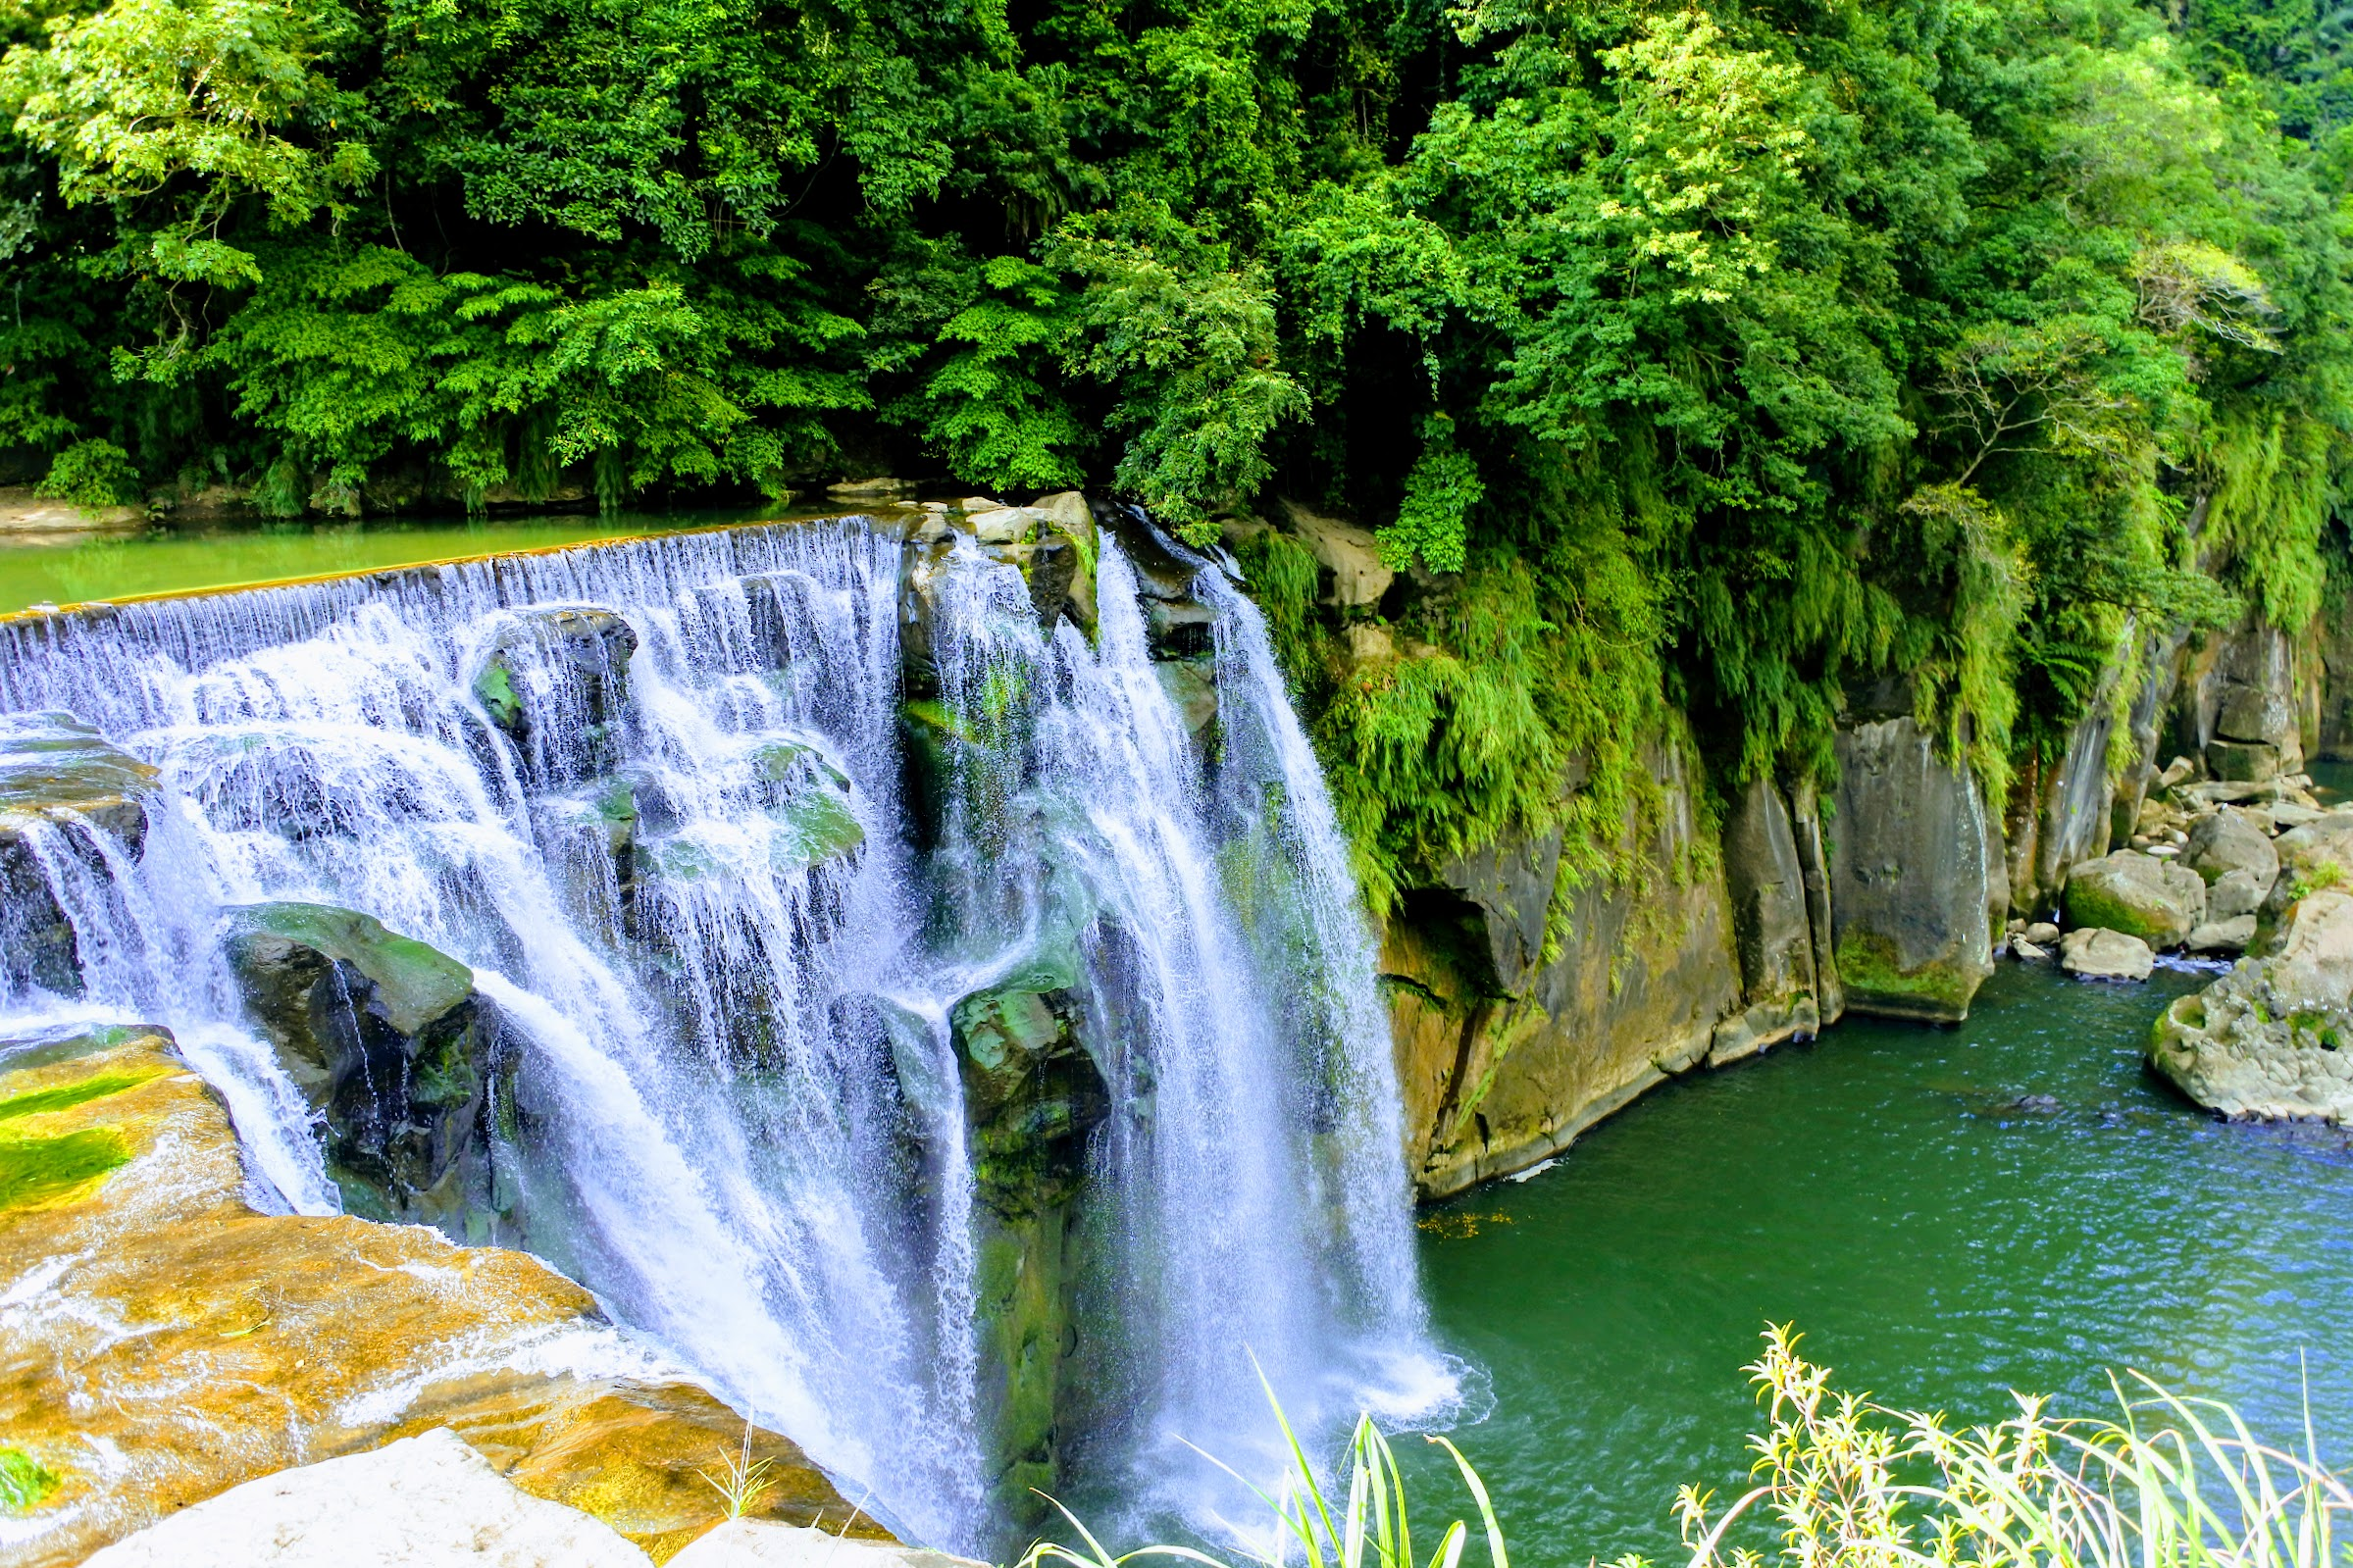 Shifen Waterfall, the star!